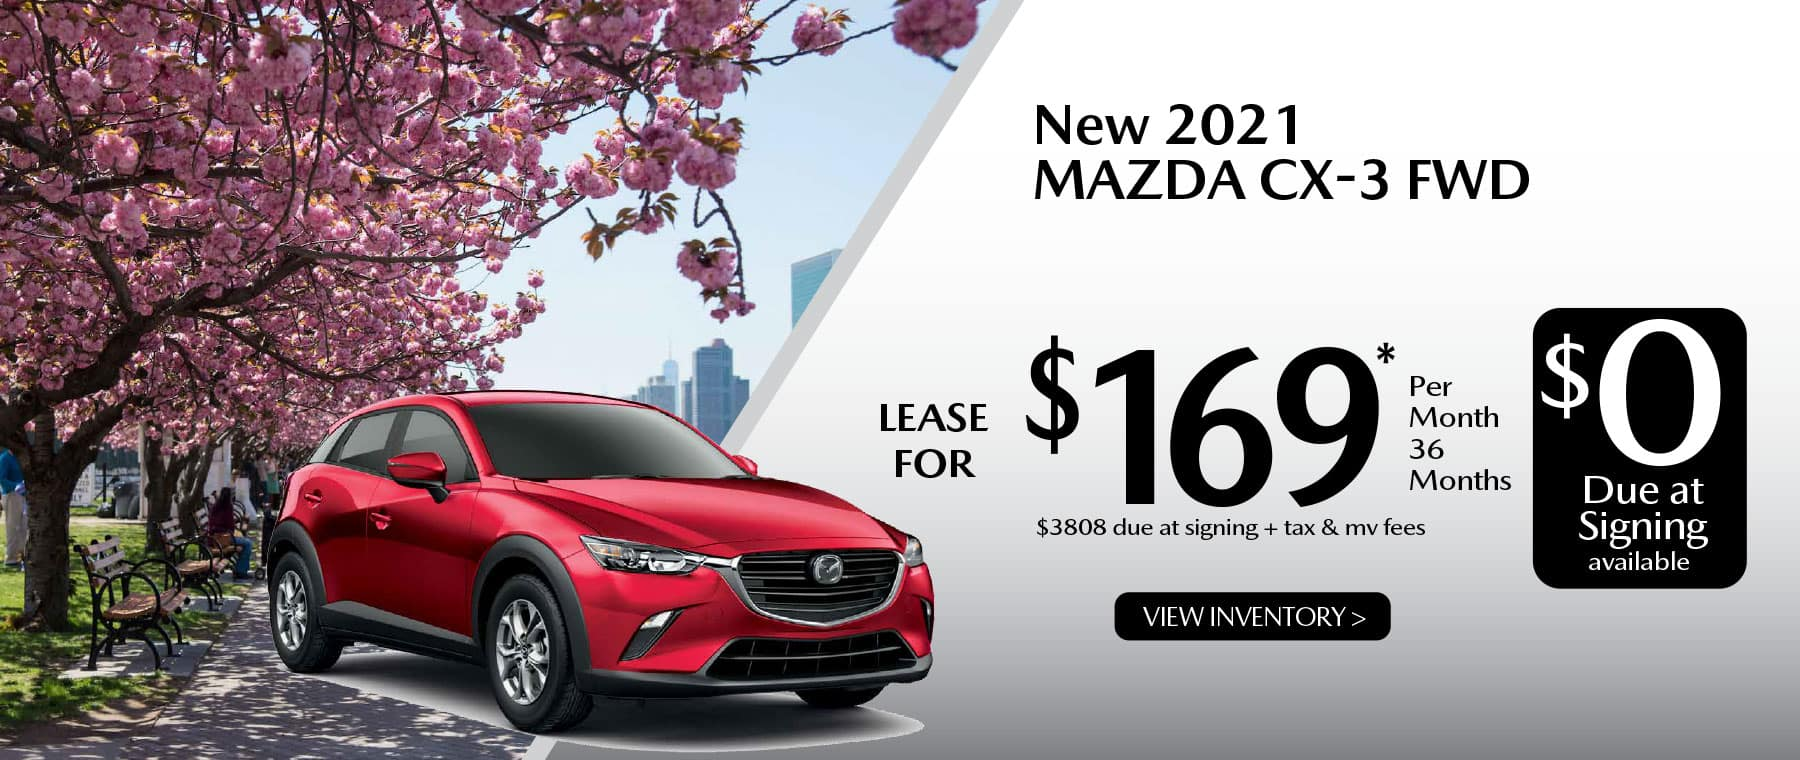 04 CX-3 hi New Lease Special Offer Garden City Mazda NY